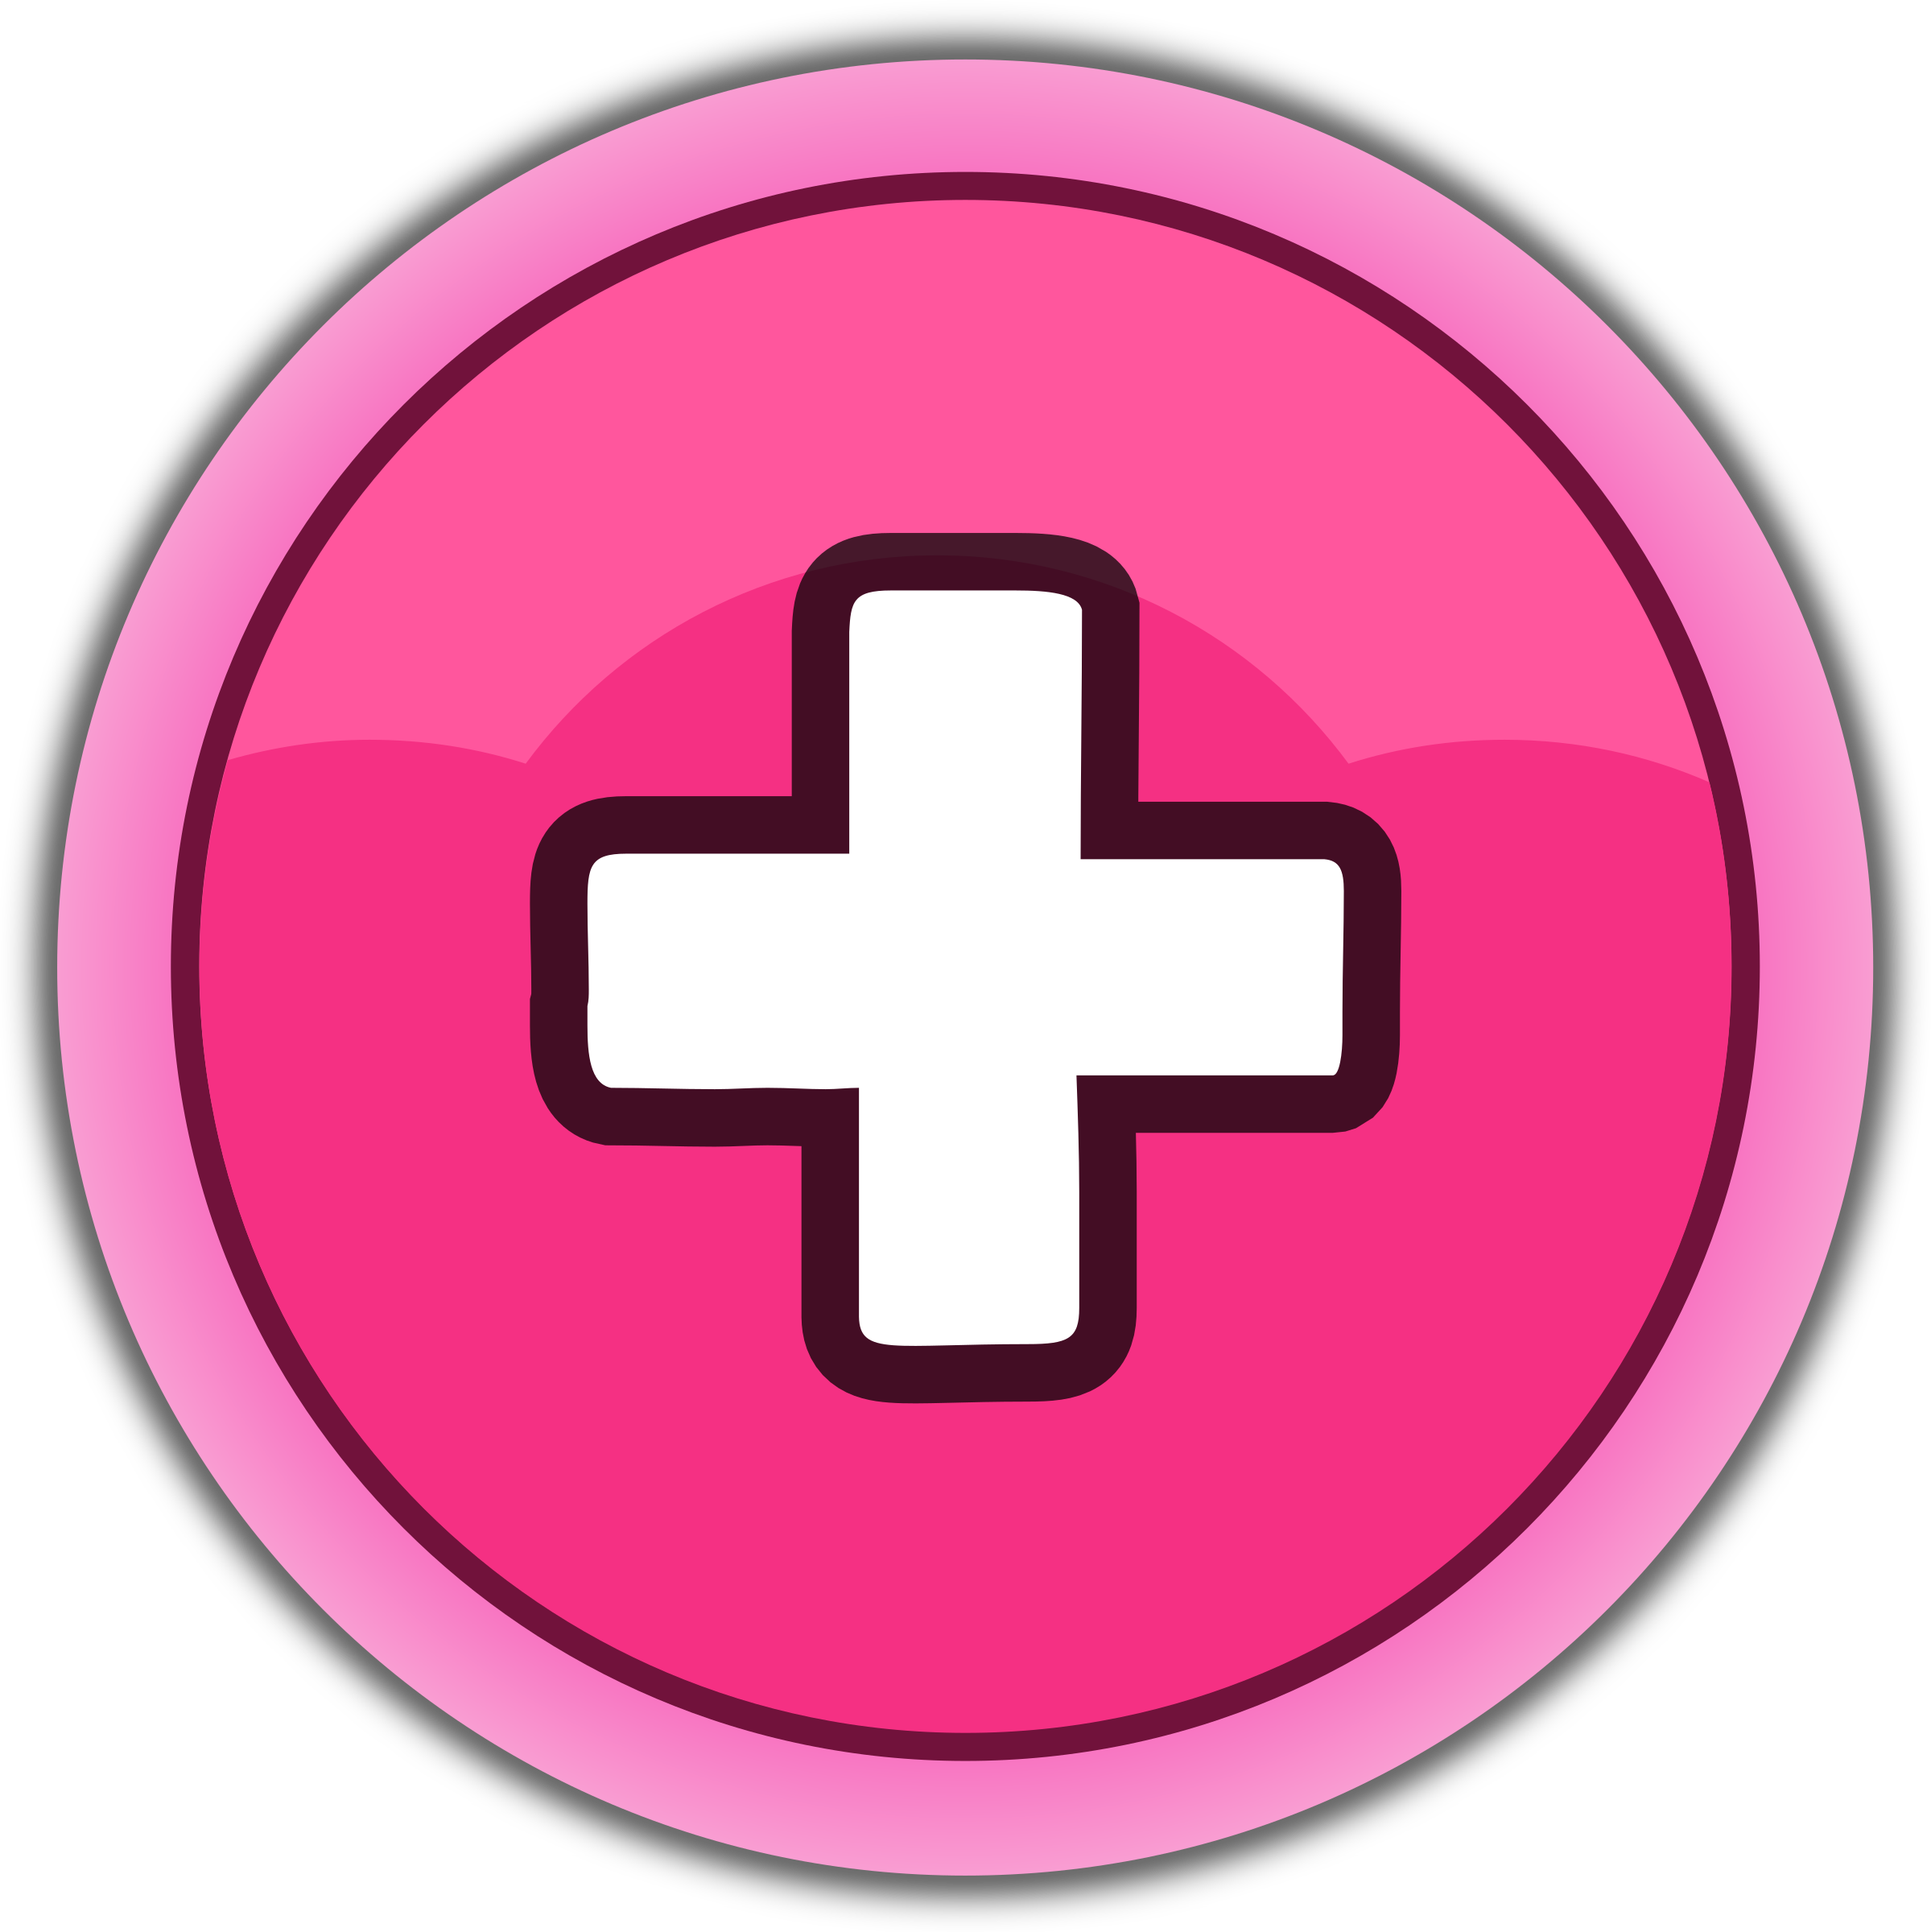 Plus button clipart jpg library library Clipart - pink button plus | Clipart Panda - Free Clipart Images jpg library library